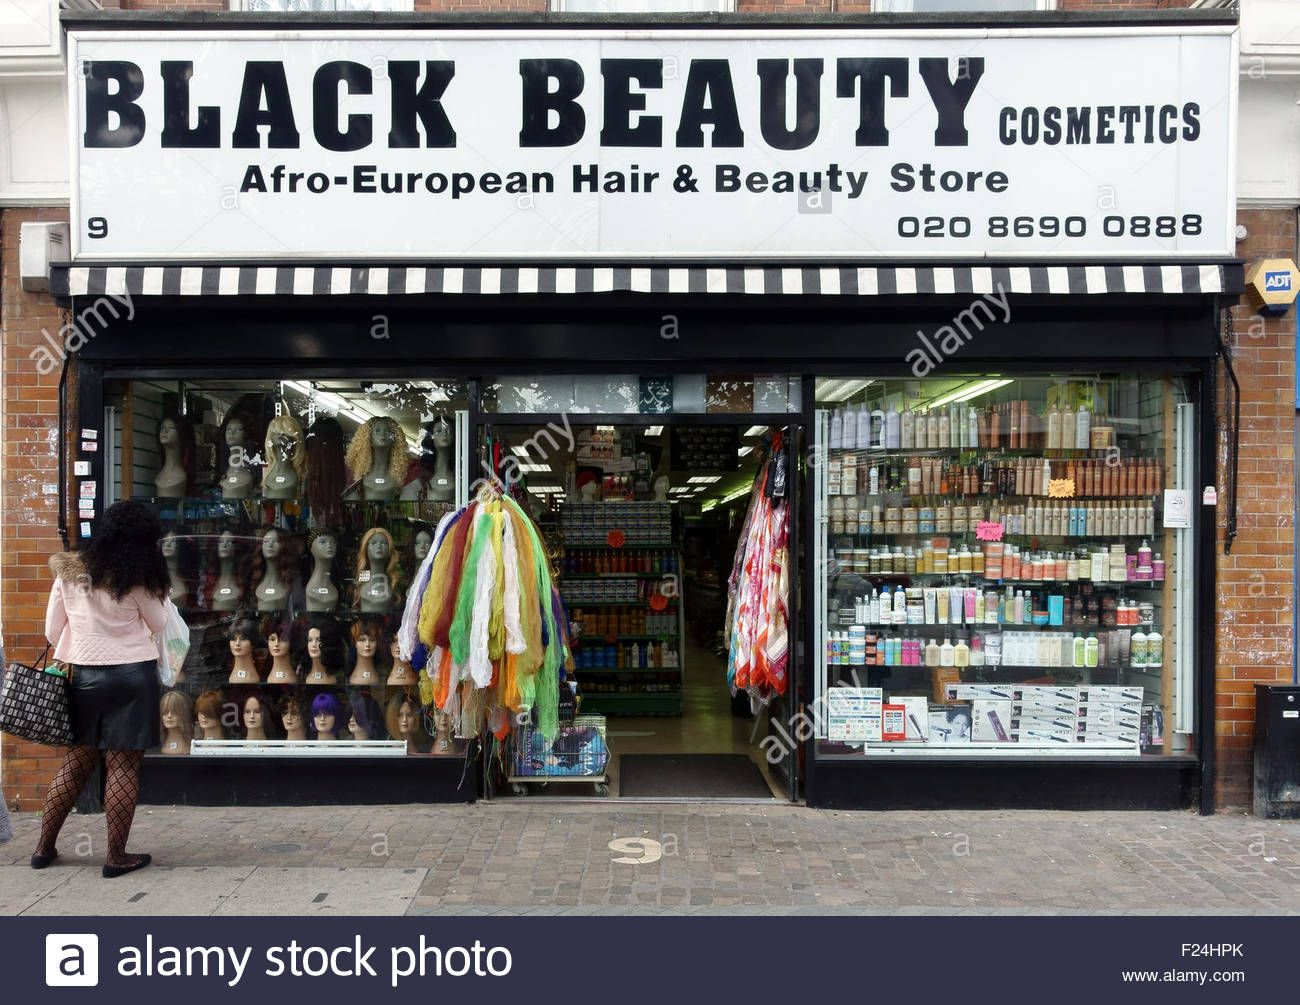 afro-european-hair-and-beauty-store-catford-south-east-london-F24HPK.jpg (1300×1005)